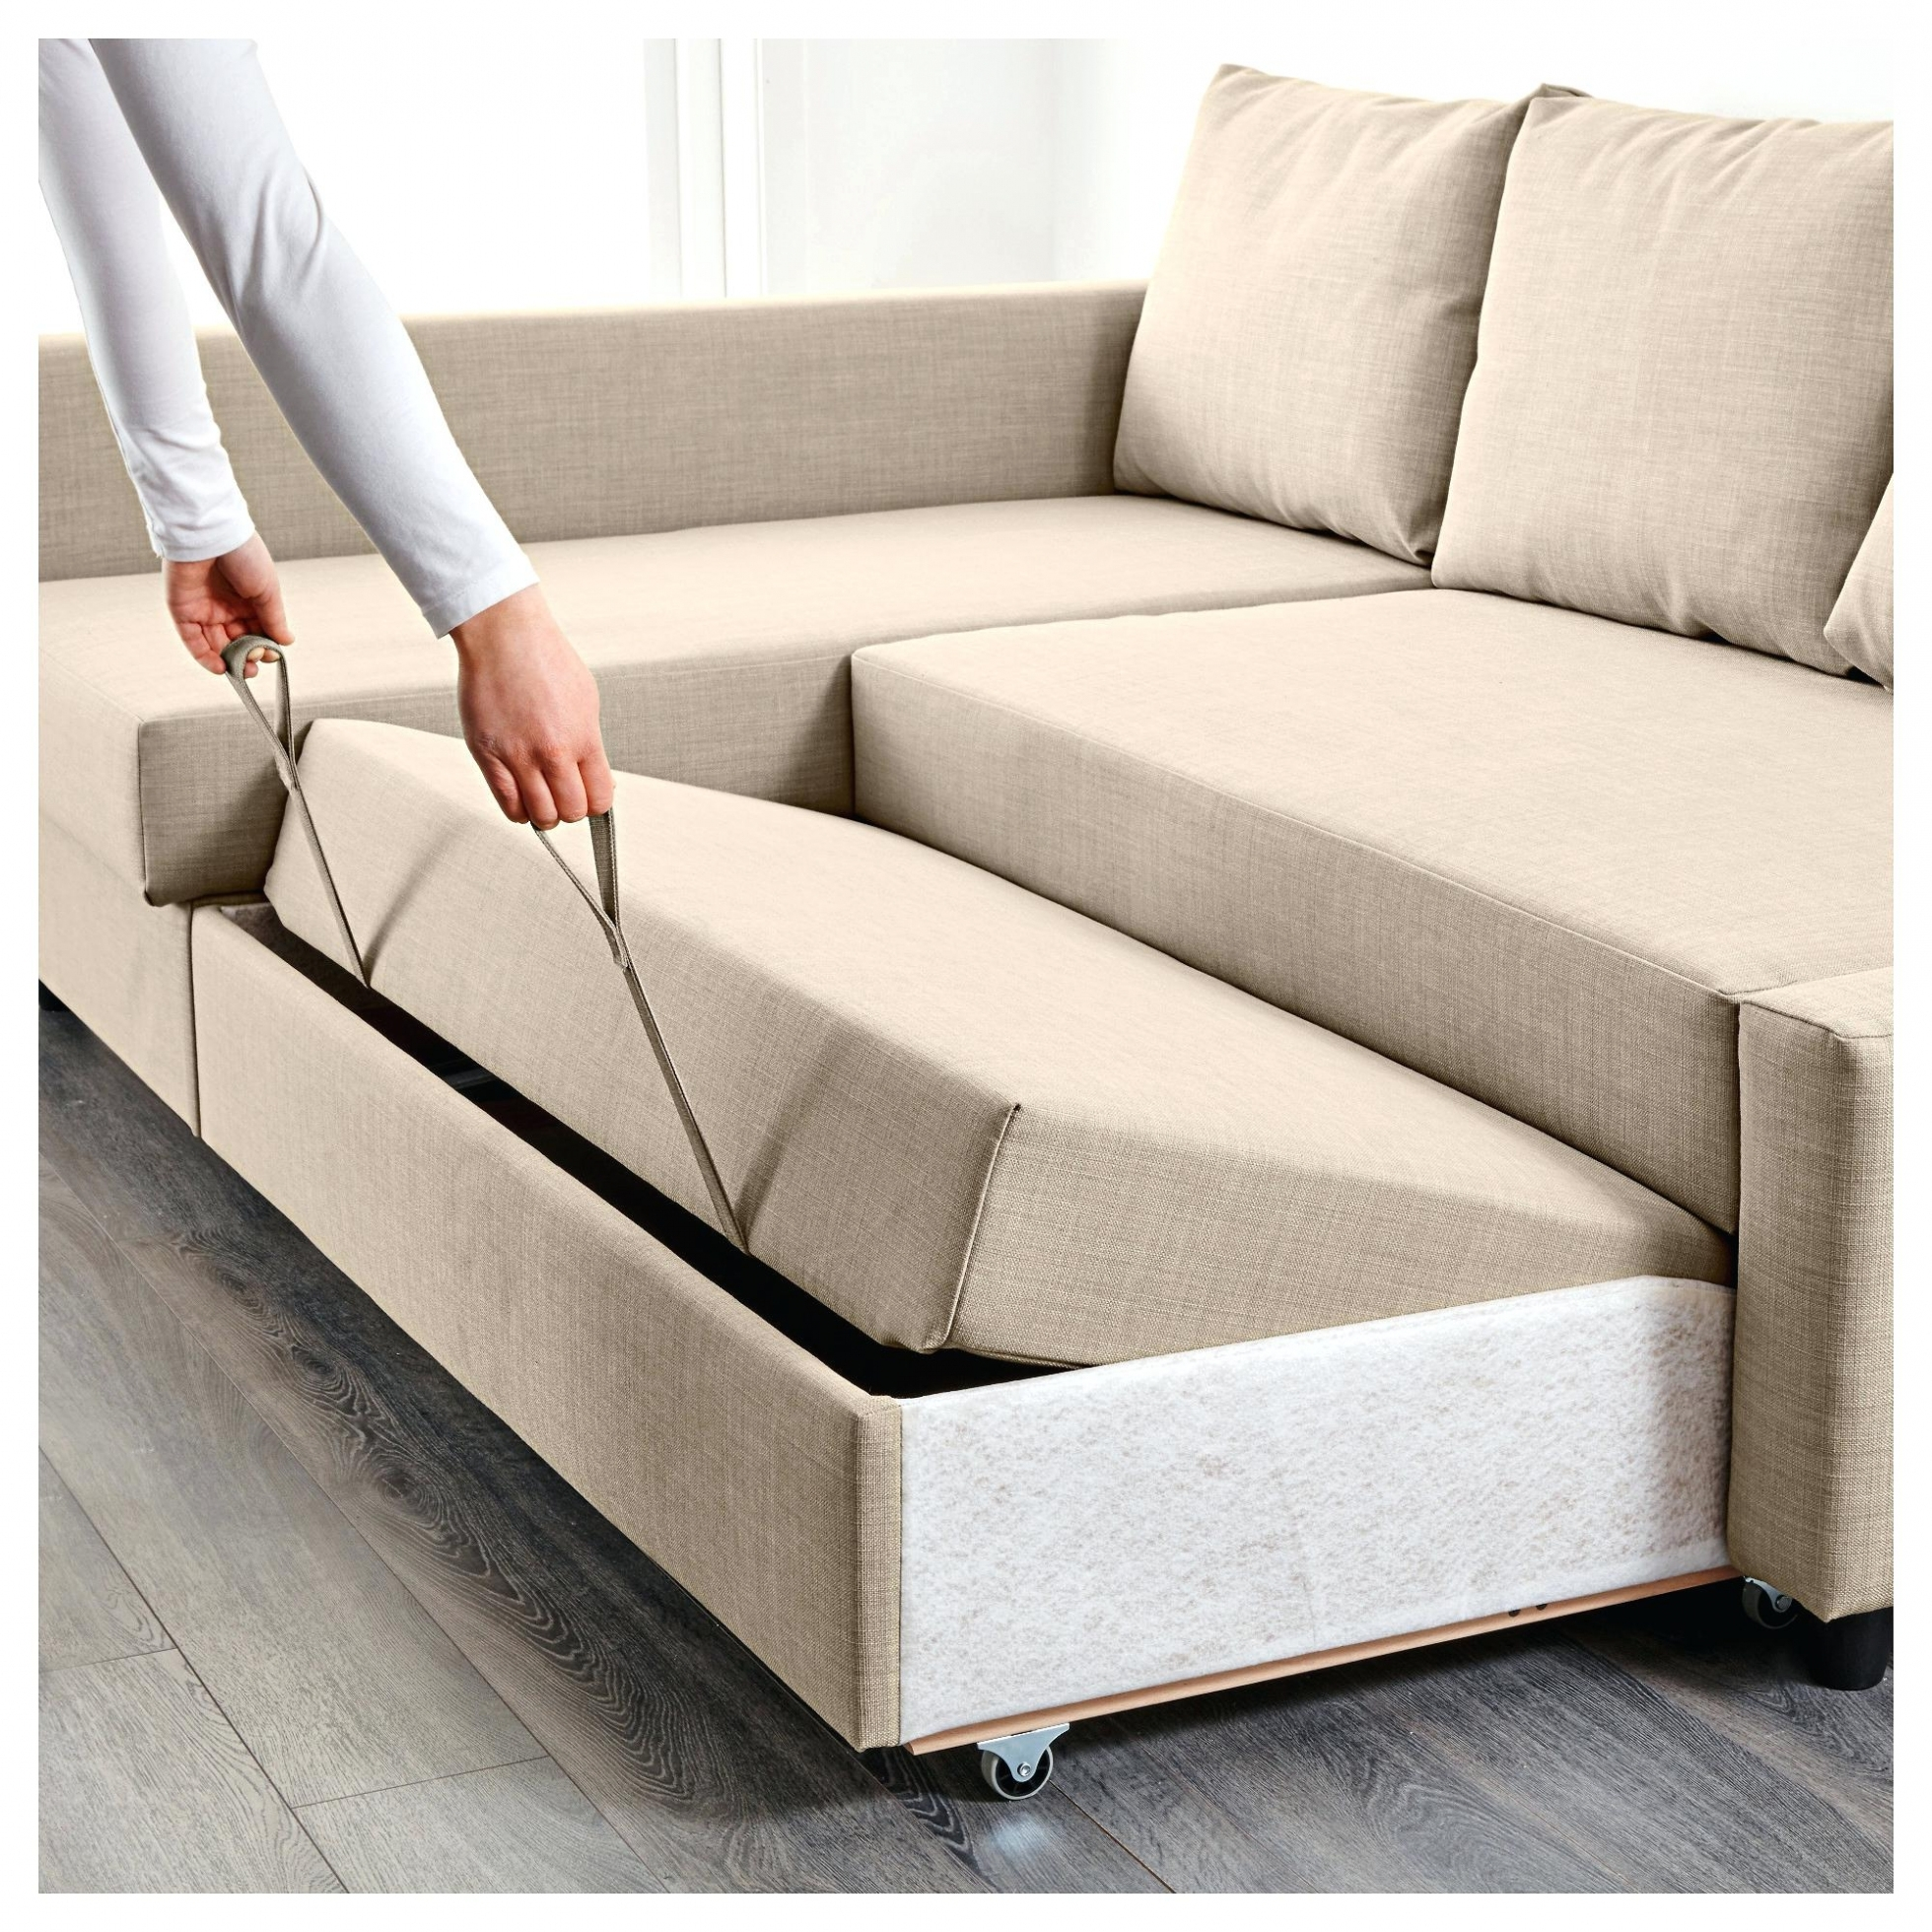 Widely Used Bedroom Sofas For Bedroom: Sofas : Fabulous Sofa Costco Futon Beds At Walmart Futons (View 7 of 15)